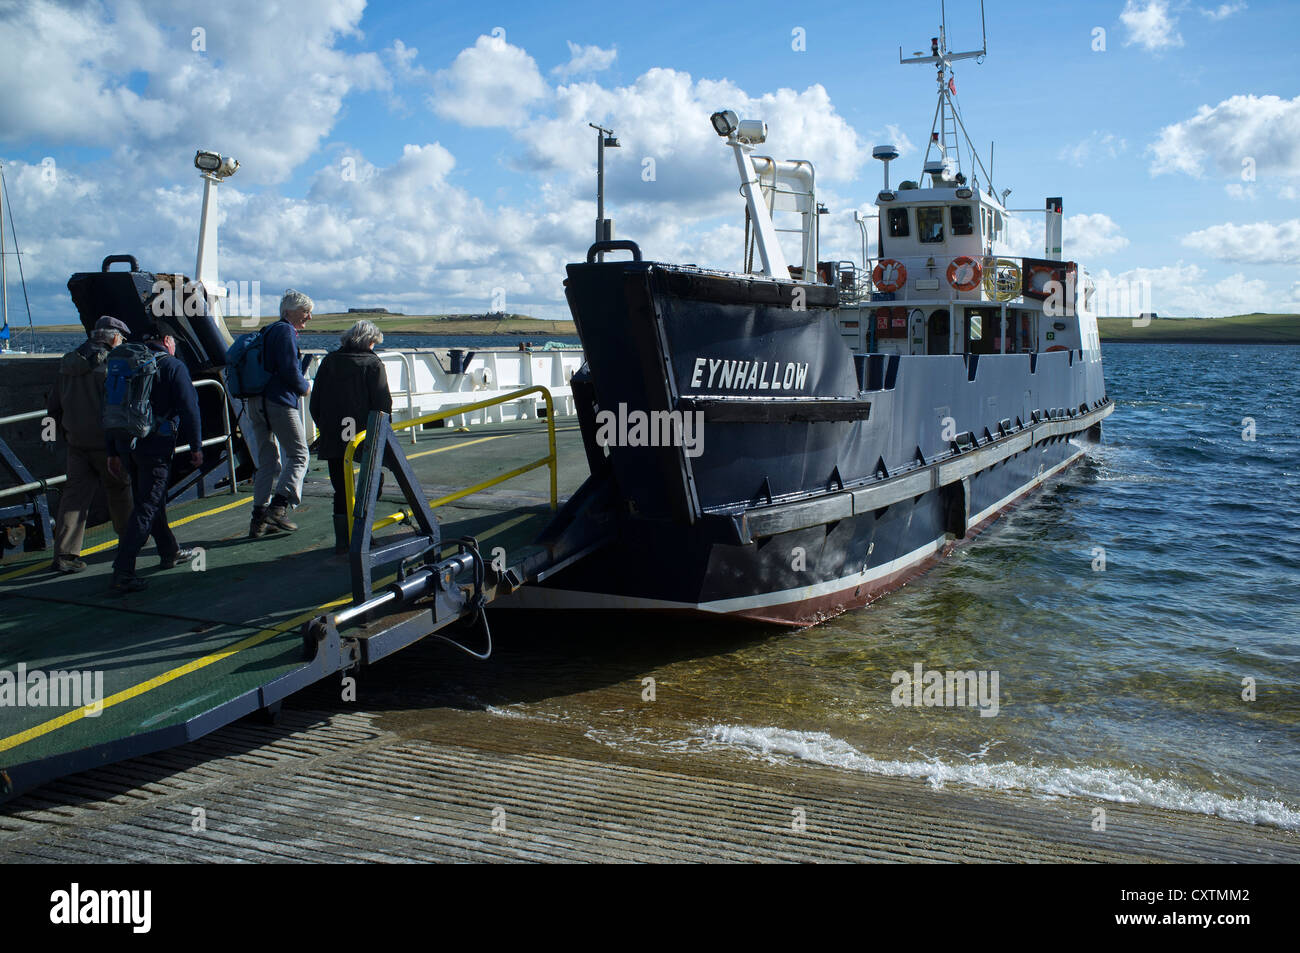 dh MV Enyhallow ROUSAY ORKNEY Passenger boarding Orkney Ferries ferry at Rousay harbour pier jetty ramp - Stock Image